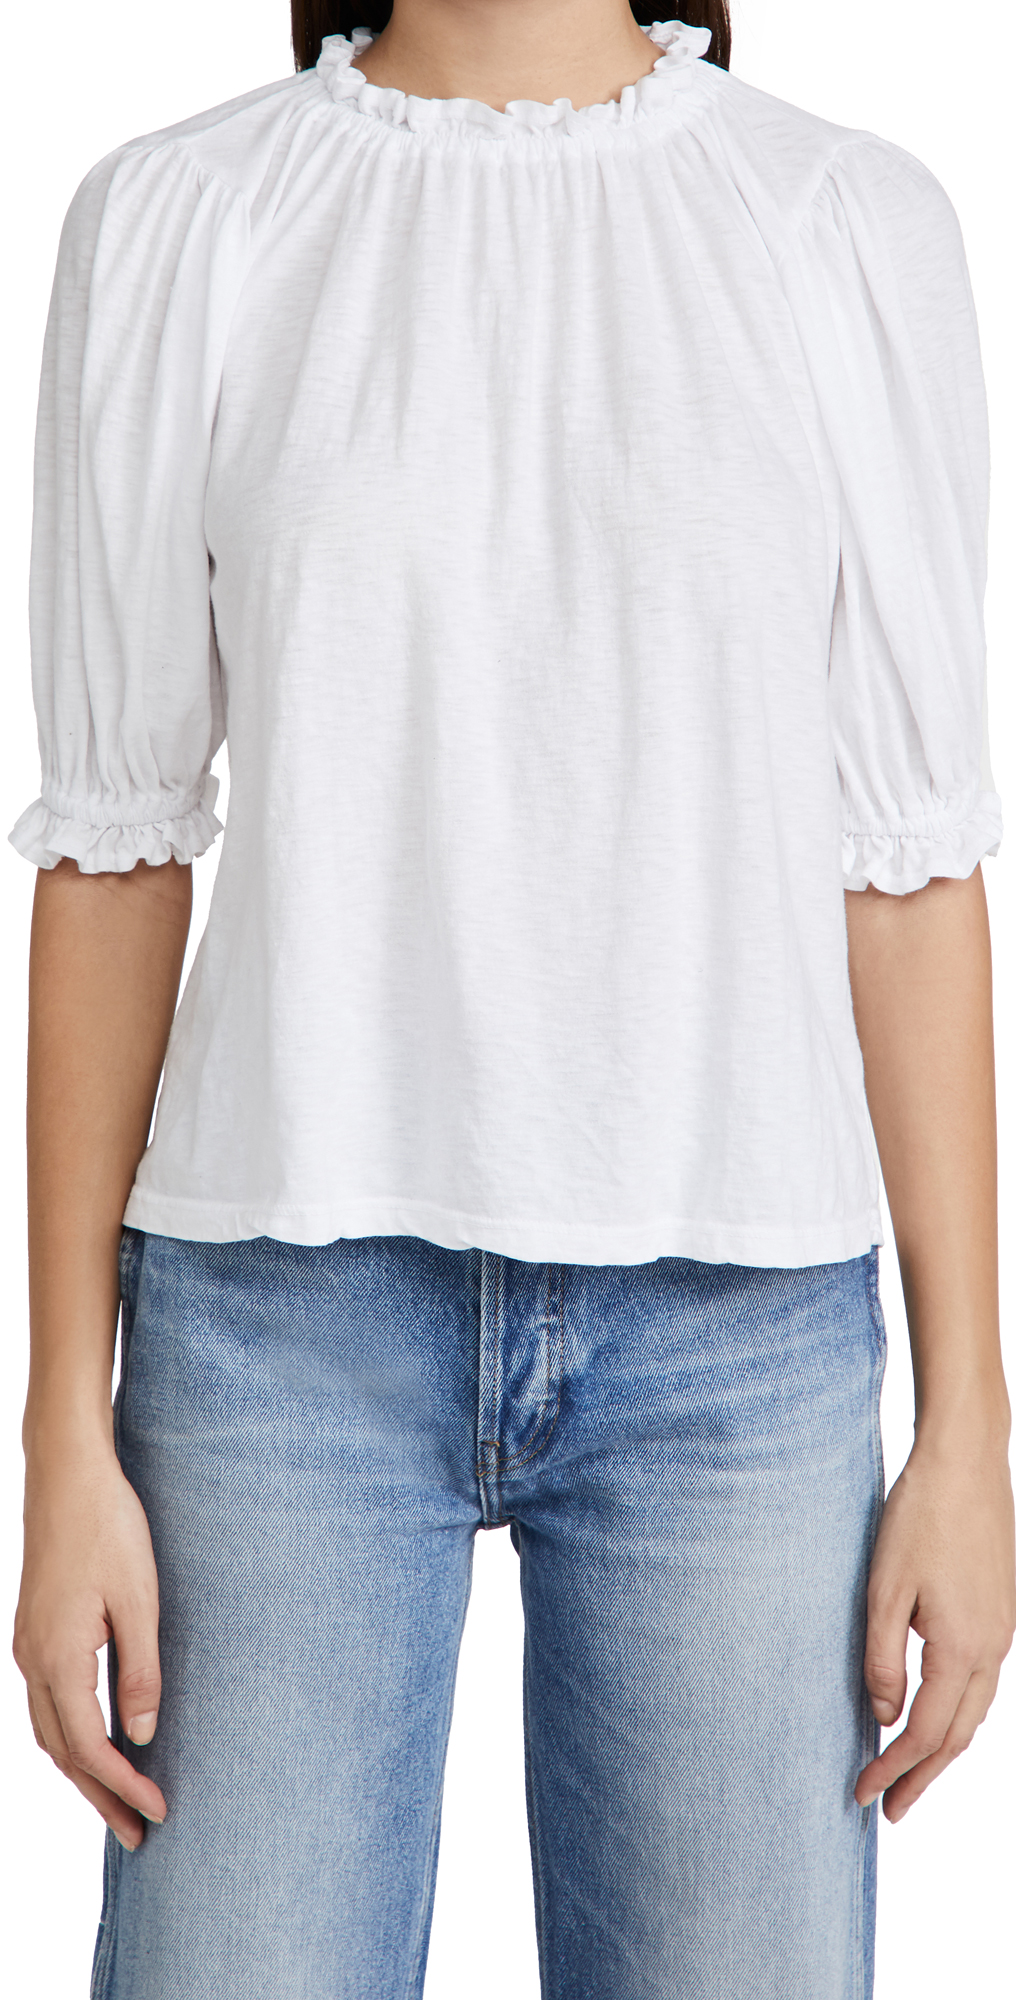 SUNDRY Bubble Sleeve Top